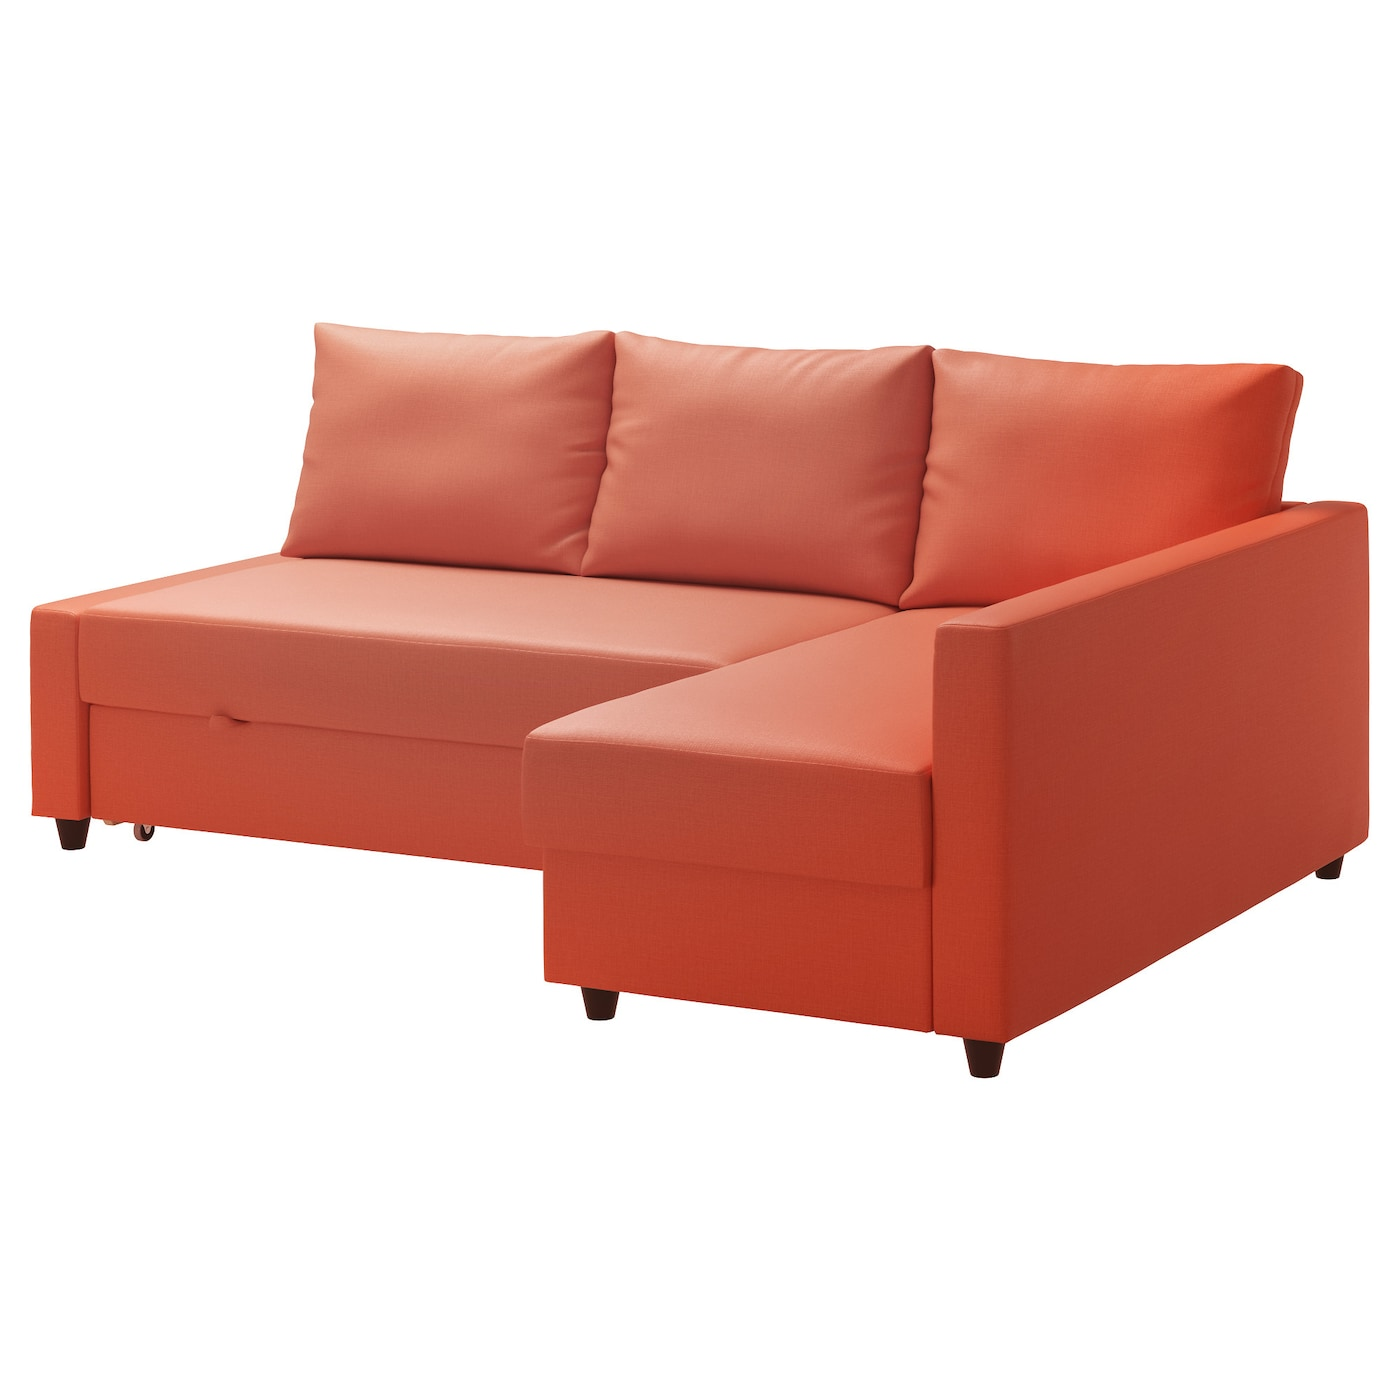 Friheten corner sofa bed with storage skiftebo dark orange for Sofa bed no mattress